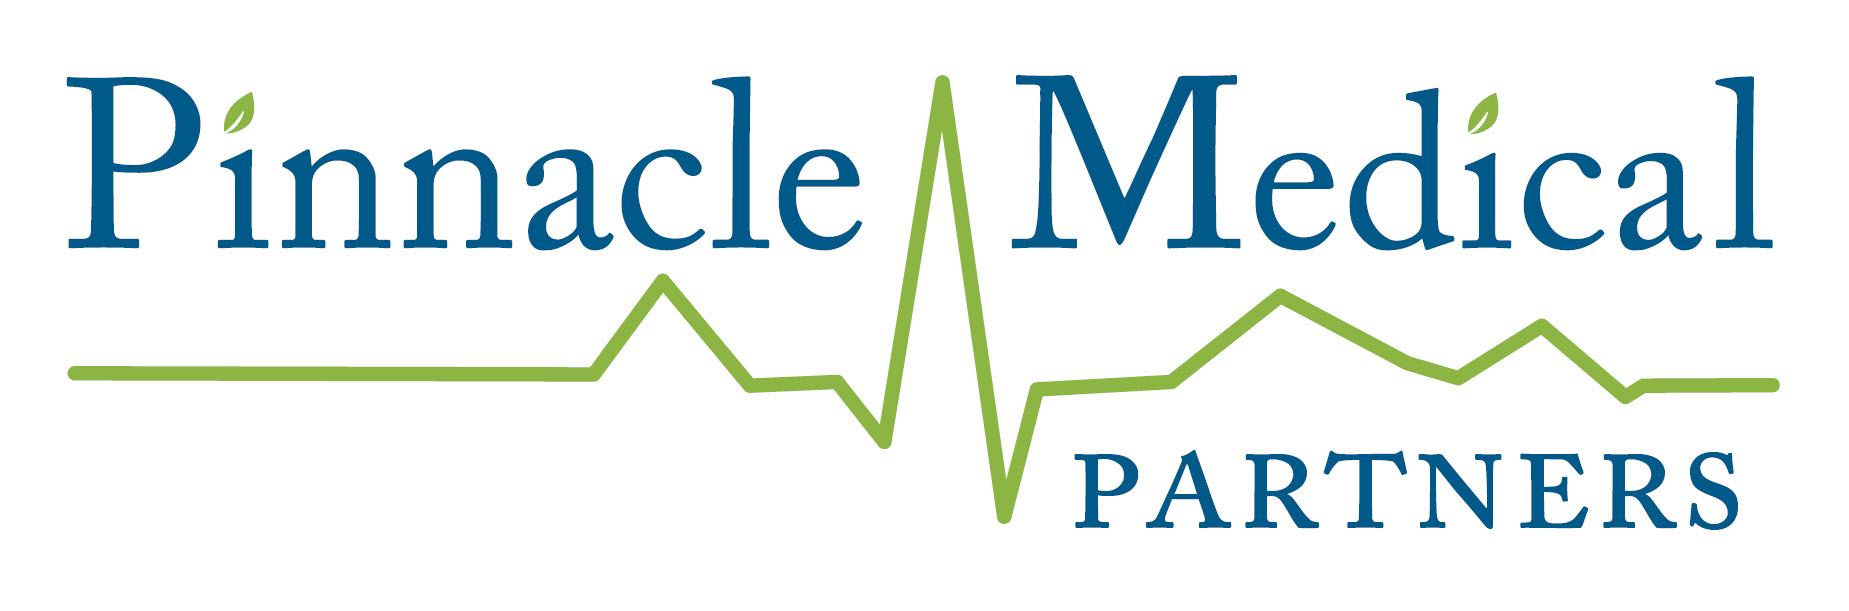 Pinnacle Medical Partners